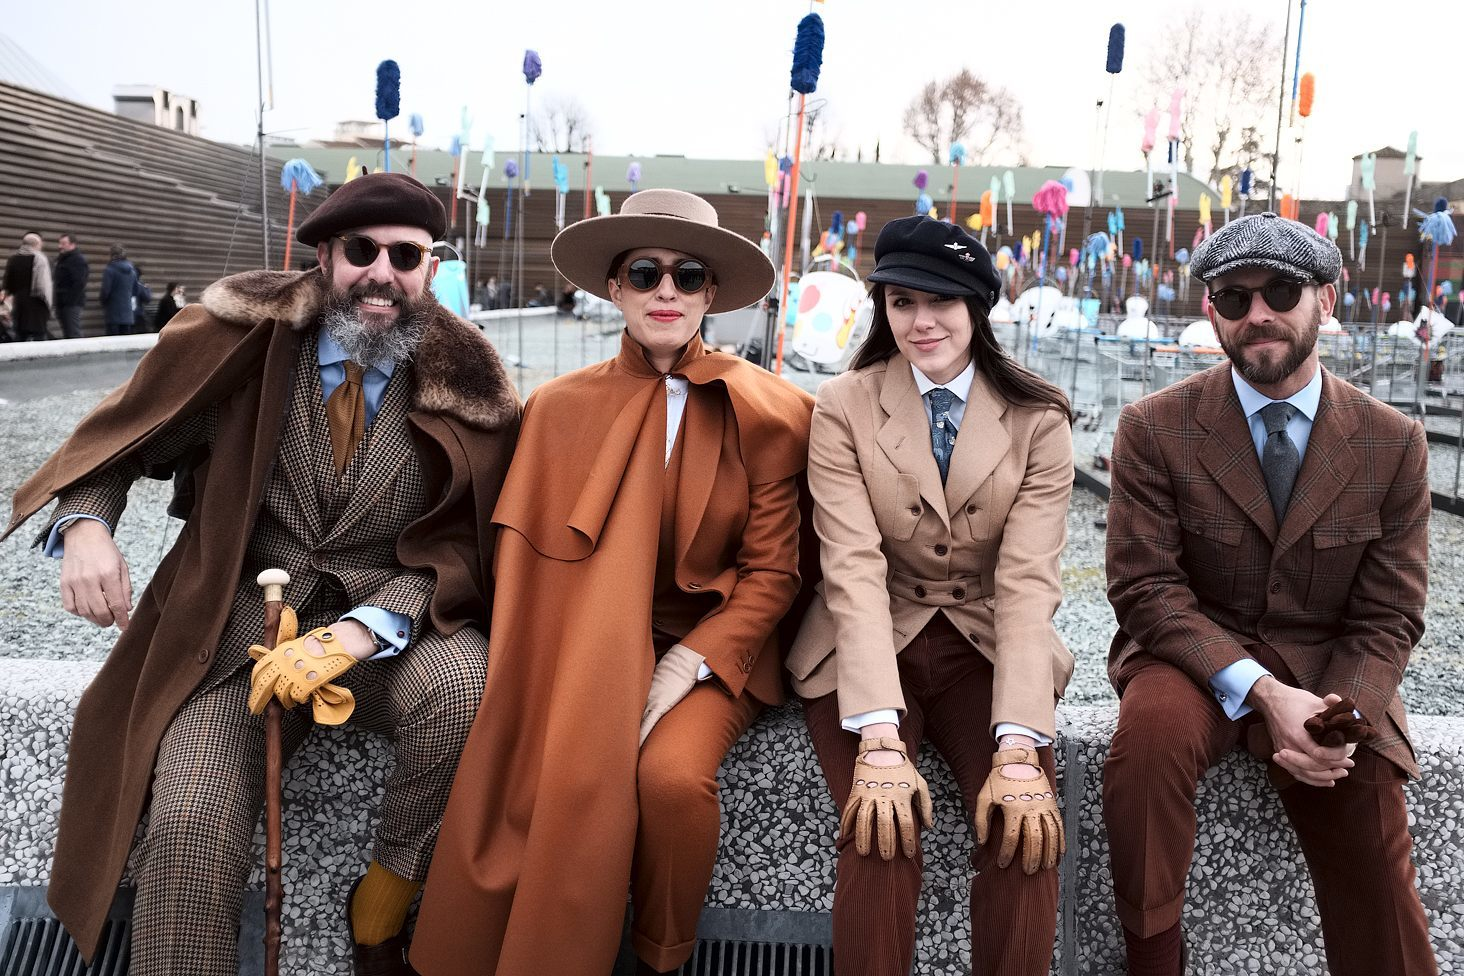 91 Pitti Uomo in Florence, Italy. Photos by Alessandro Michelazzi